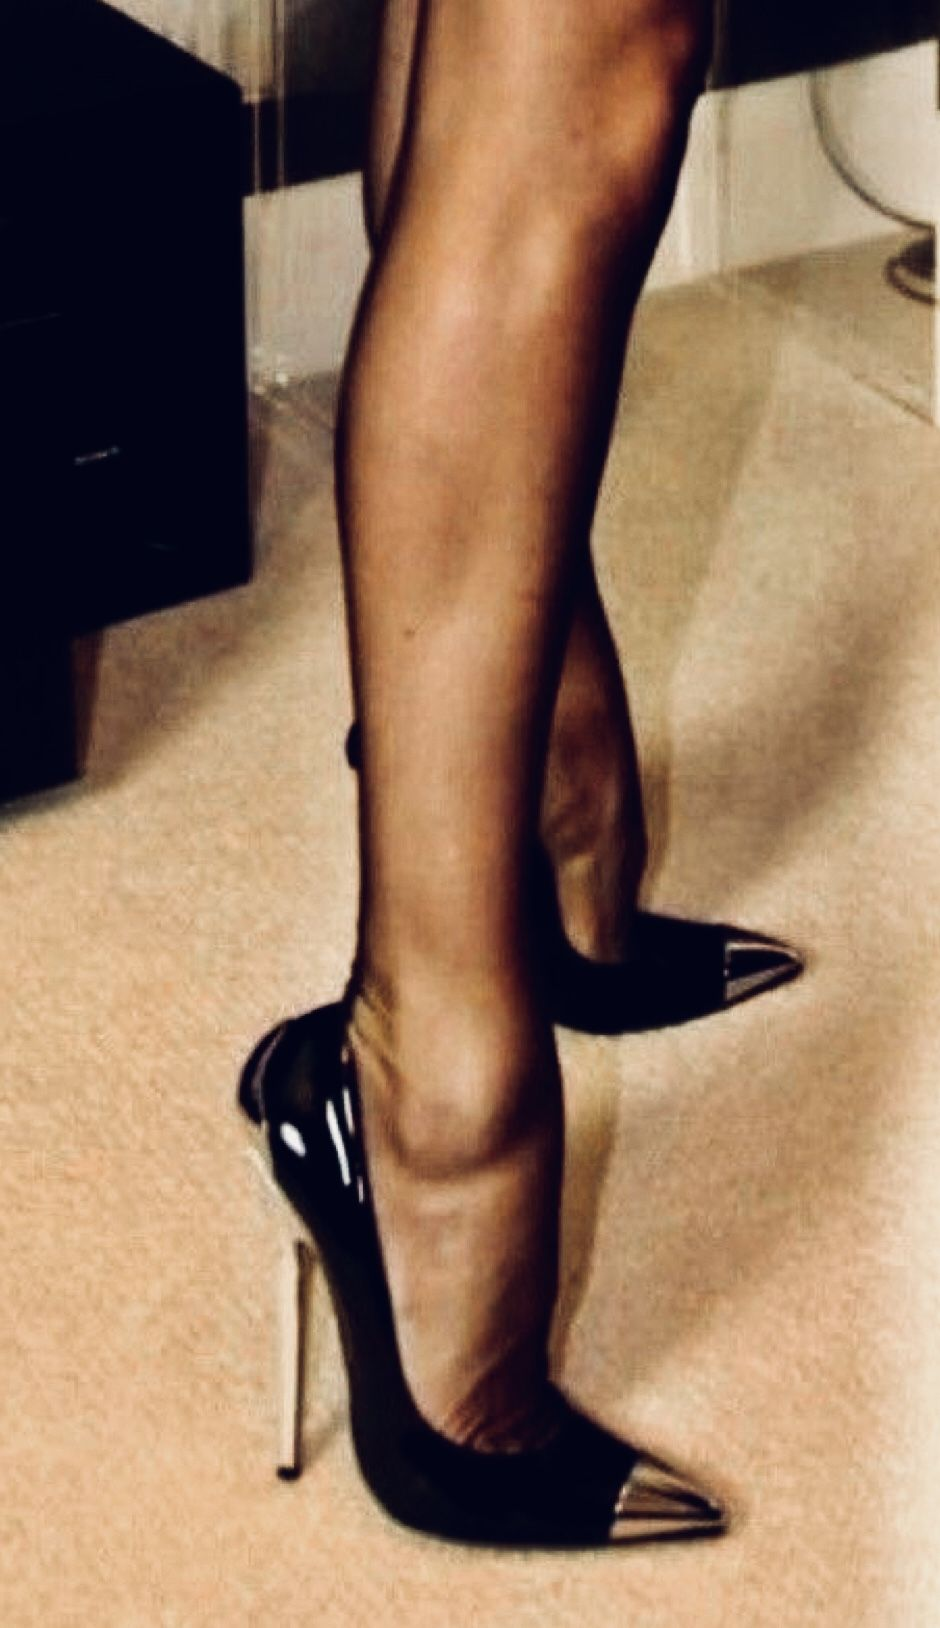 Pin by Roslyn on Hot all the time | Heels, Stiletto heels